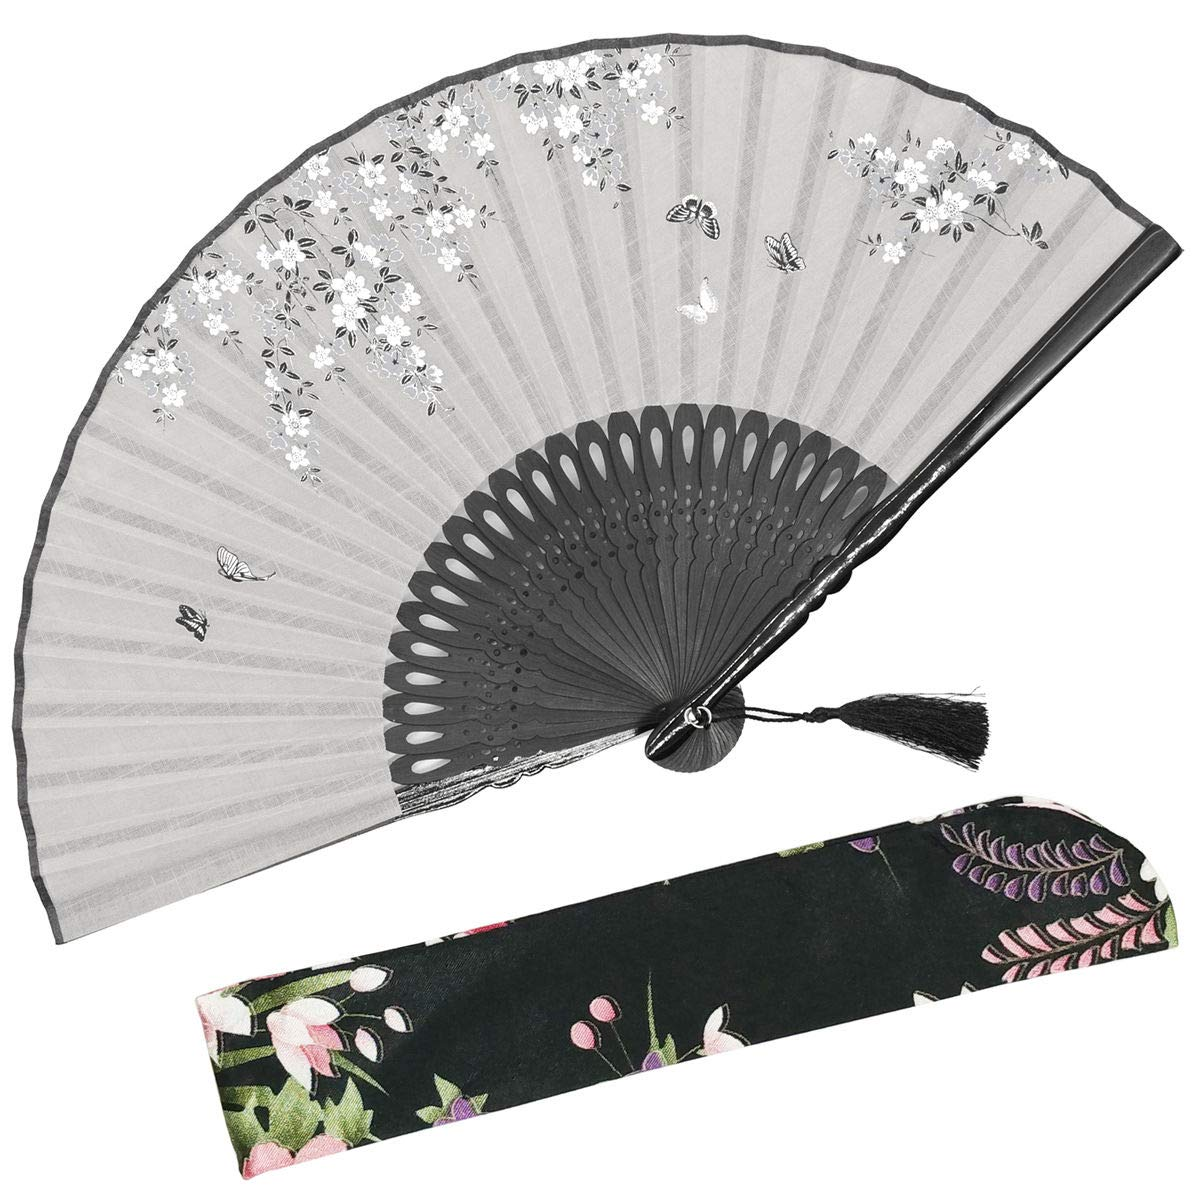 OMyTea ''Sakura Love Chinese/Japanese Folding Hand Held Fan for Women - With a Fabric Sleeve for Protection - for Wedding, Dancing, Church, Party, Gifts (Gray)